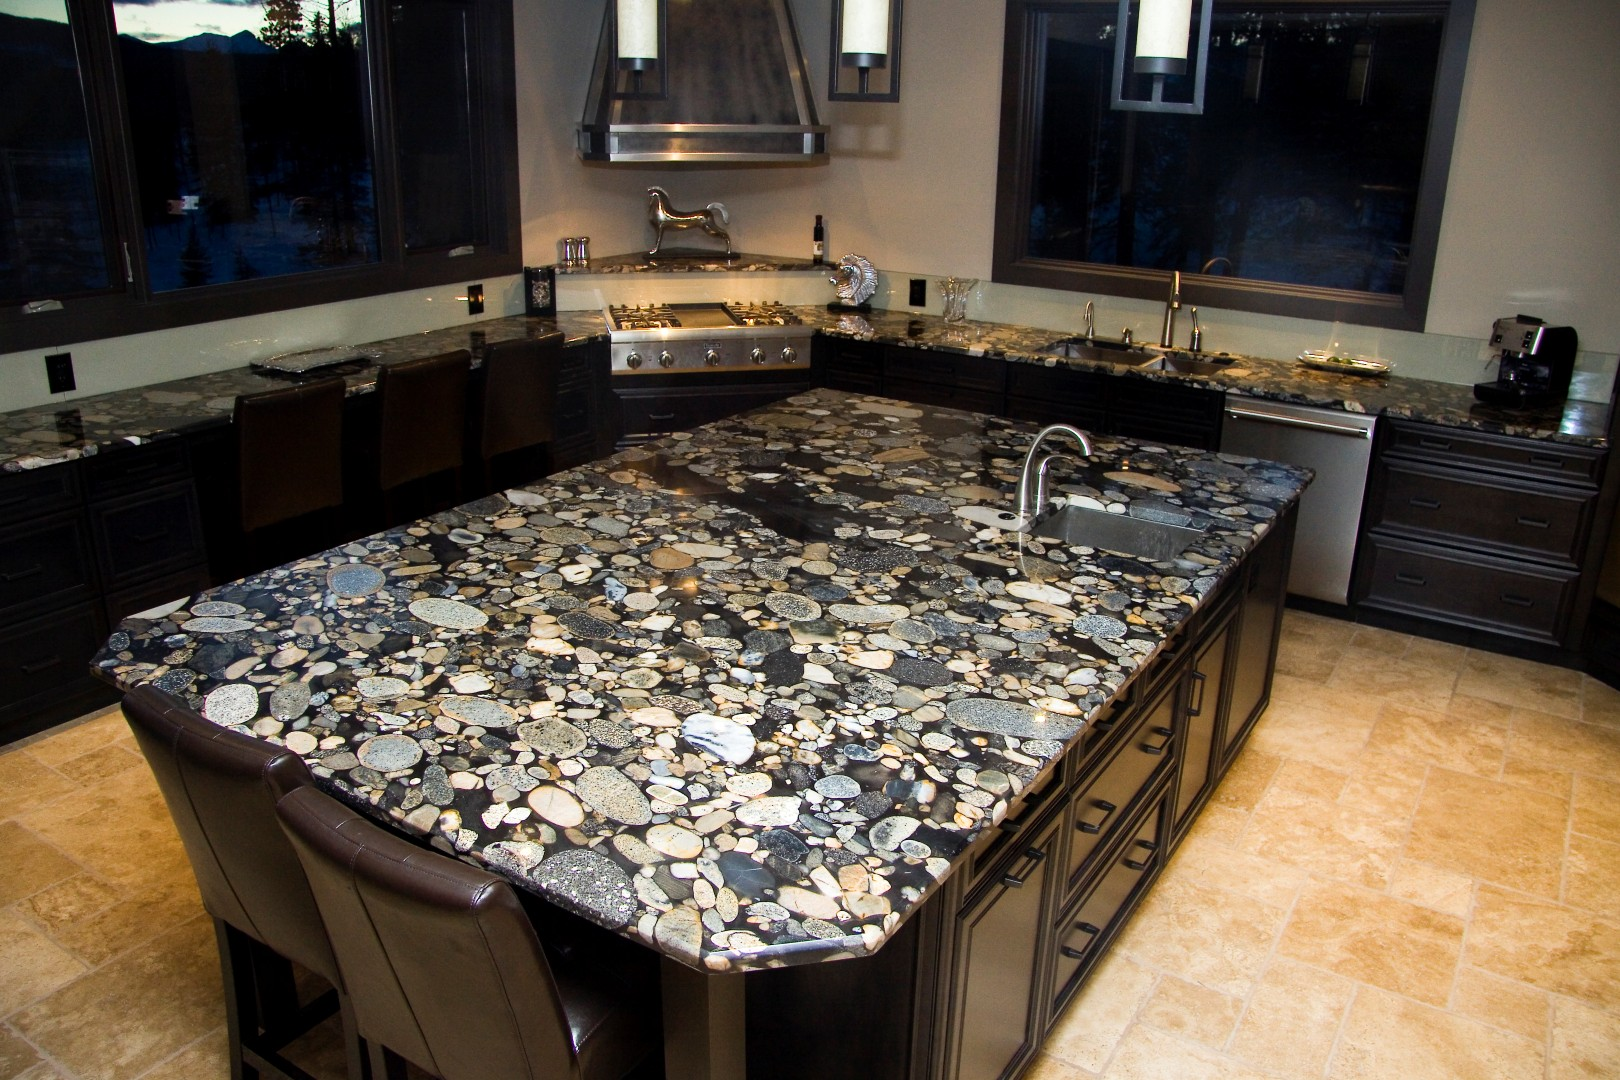 Kitchen Countertops Product : Kitchen bath countertop installation photos in brevard